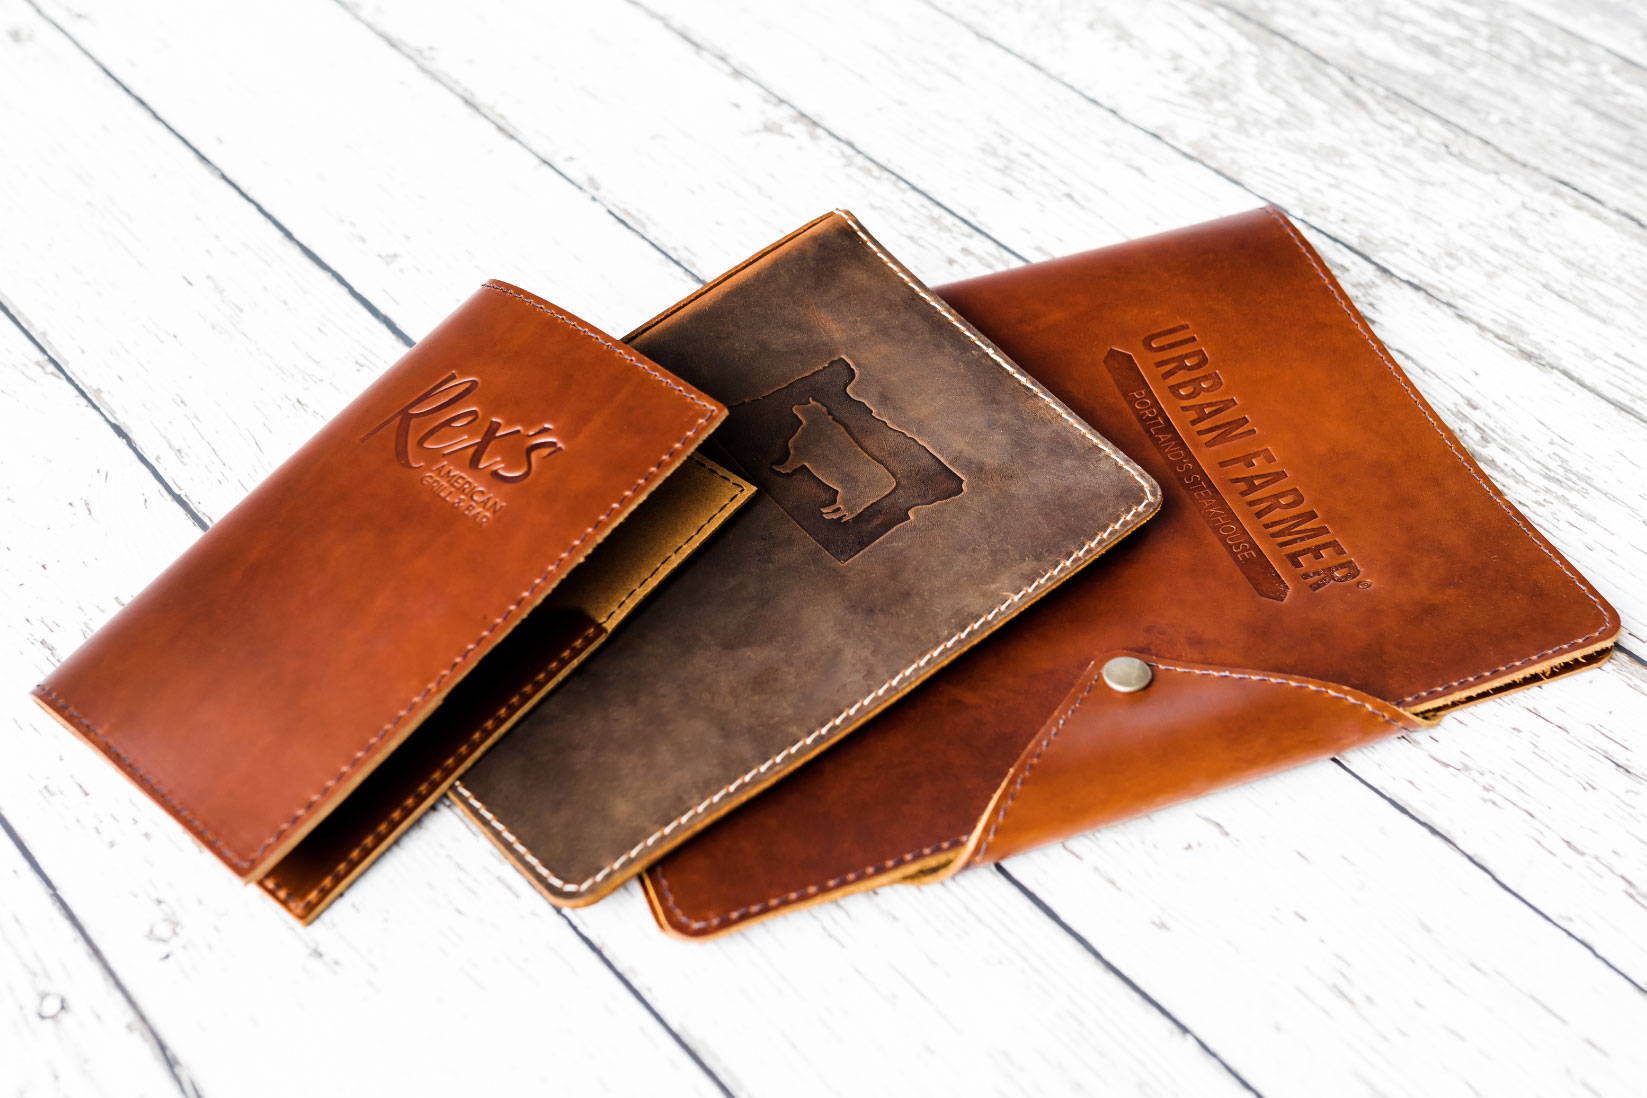 3 sizes of custom firebranded leather menu covers and checkbooks